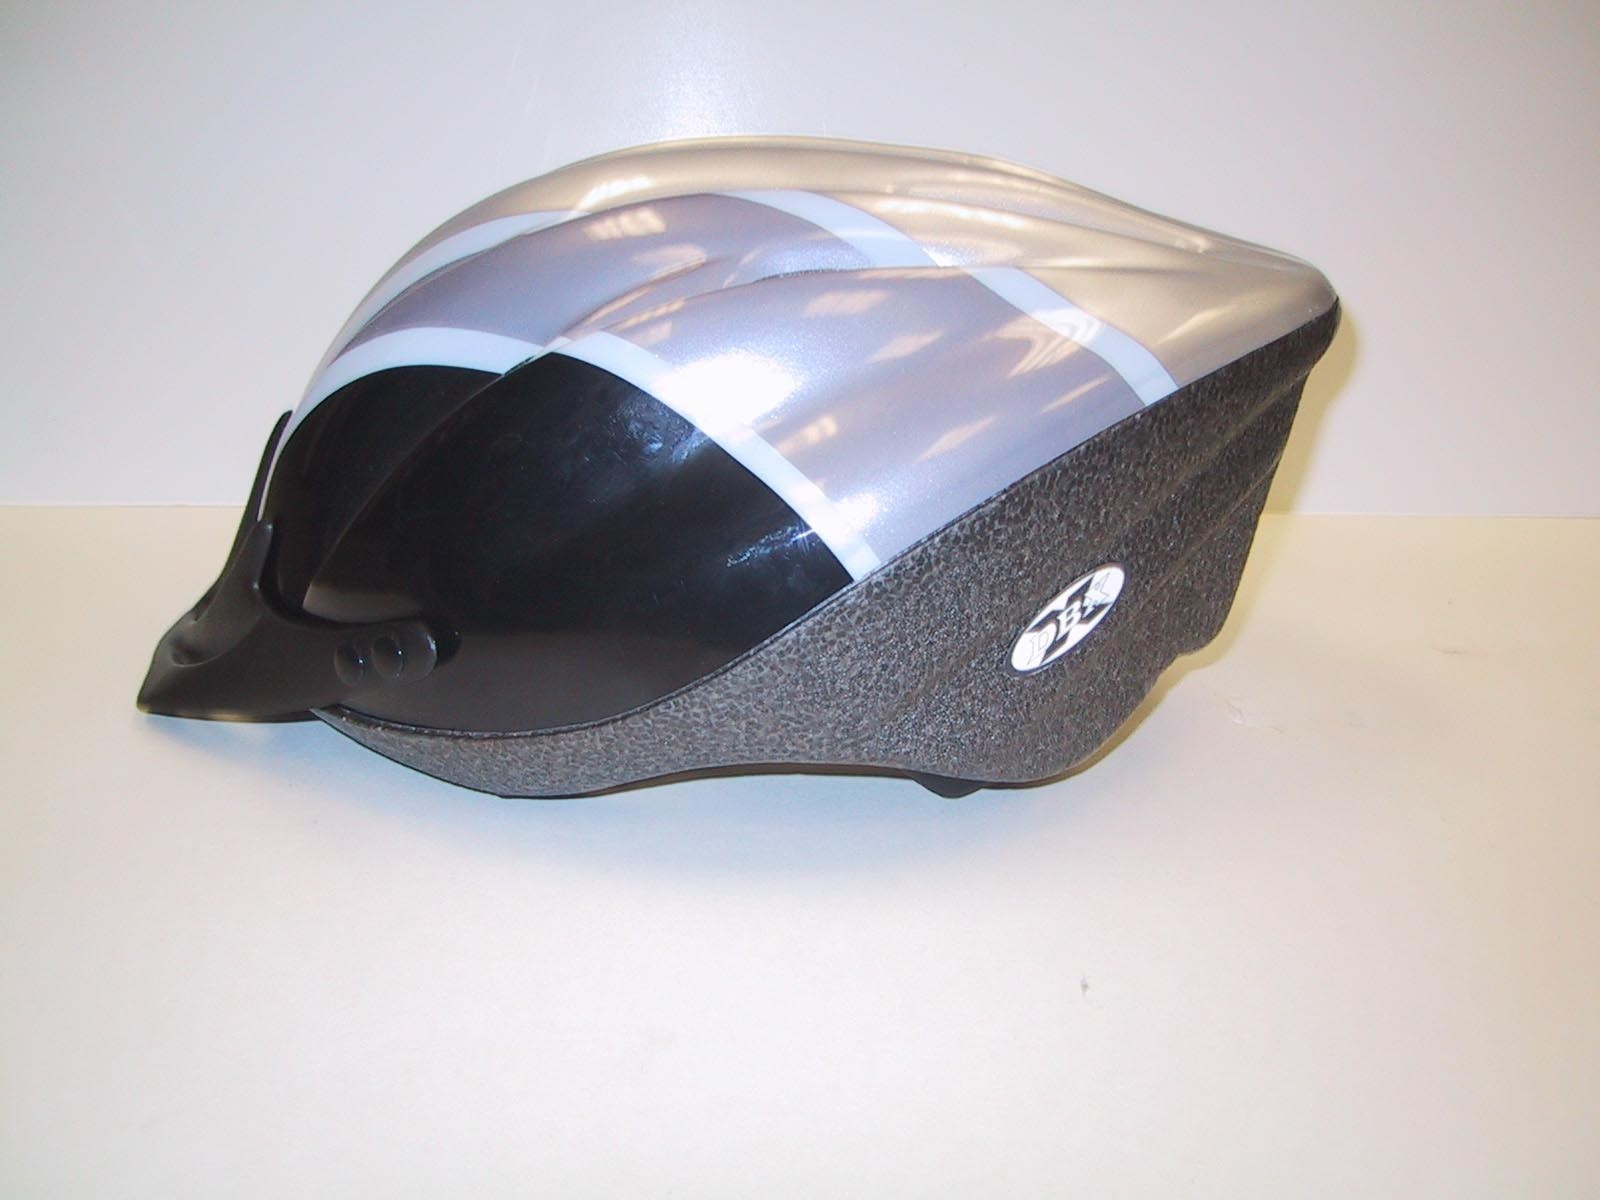 Picture of Recalled Geartec ESPY bicycle helmets